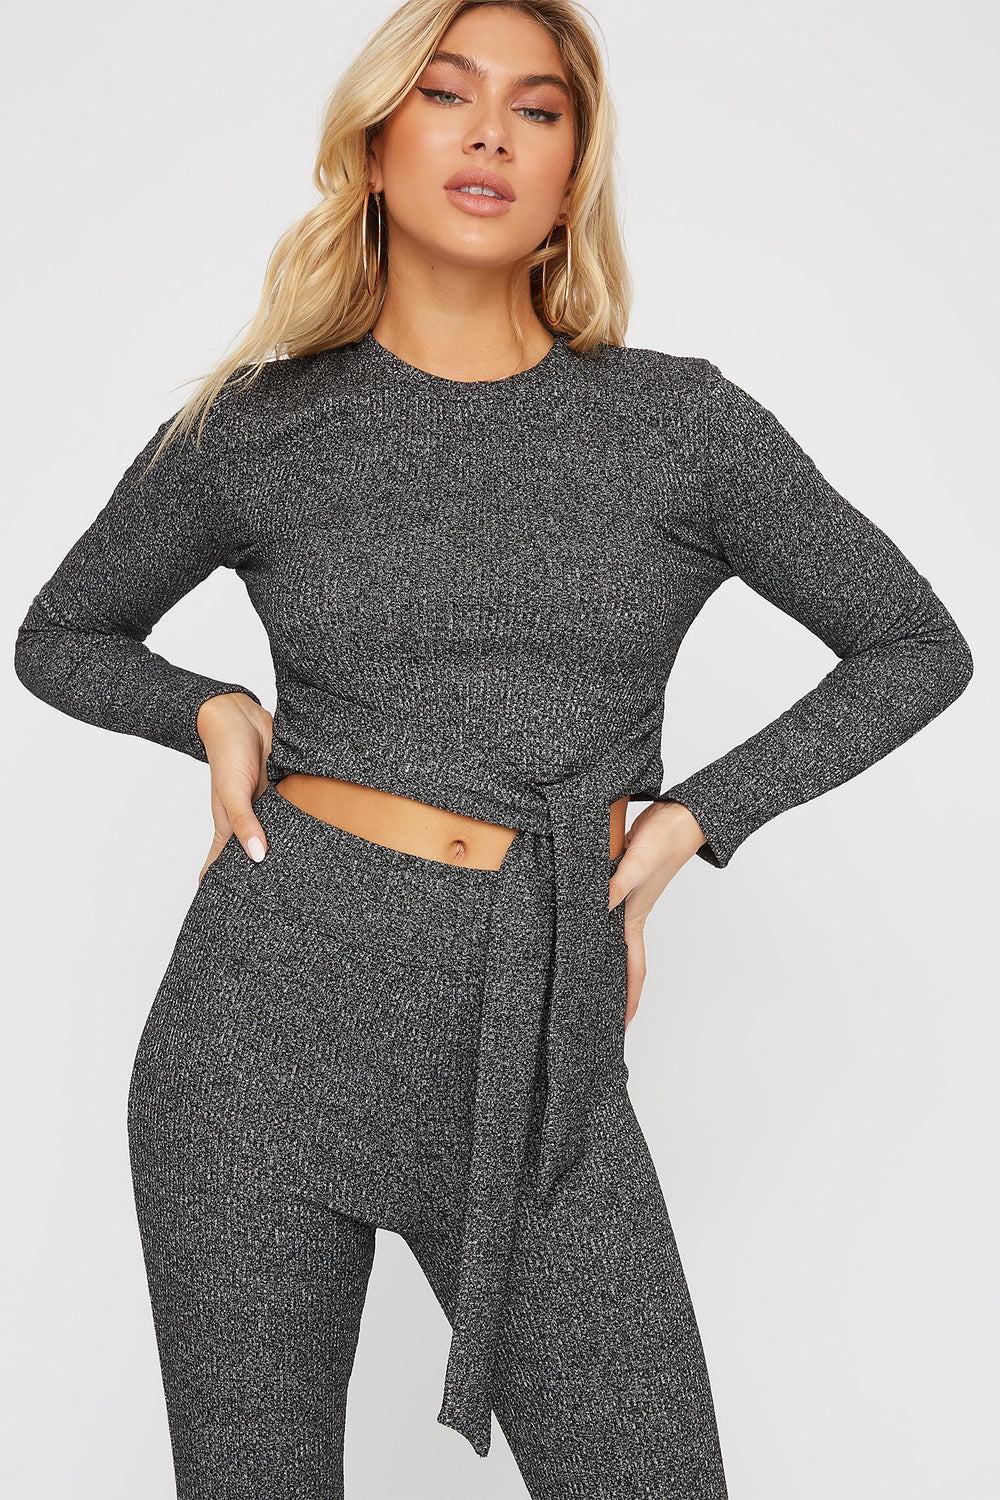 Ribbed Tie Cropped Long Sleeve Black with White